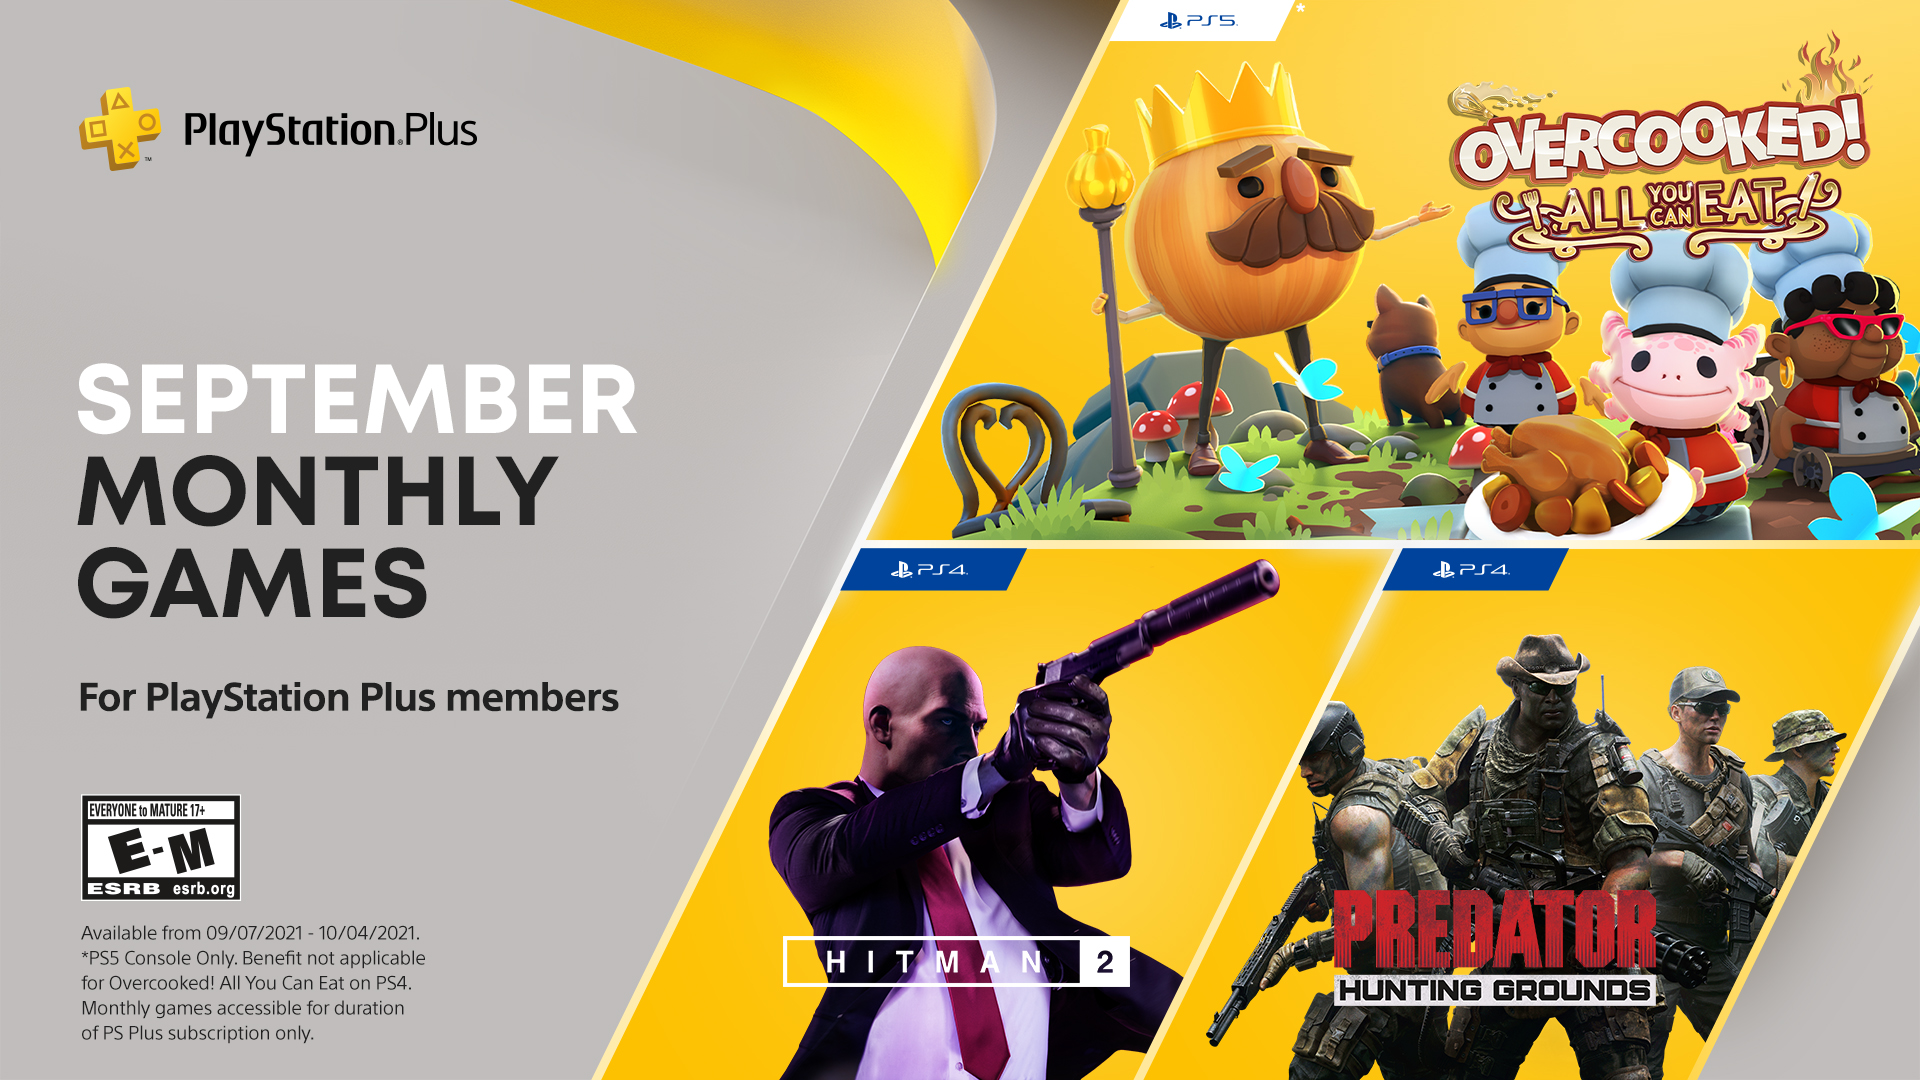 PS Plus Free Games September 2021